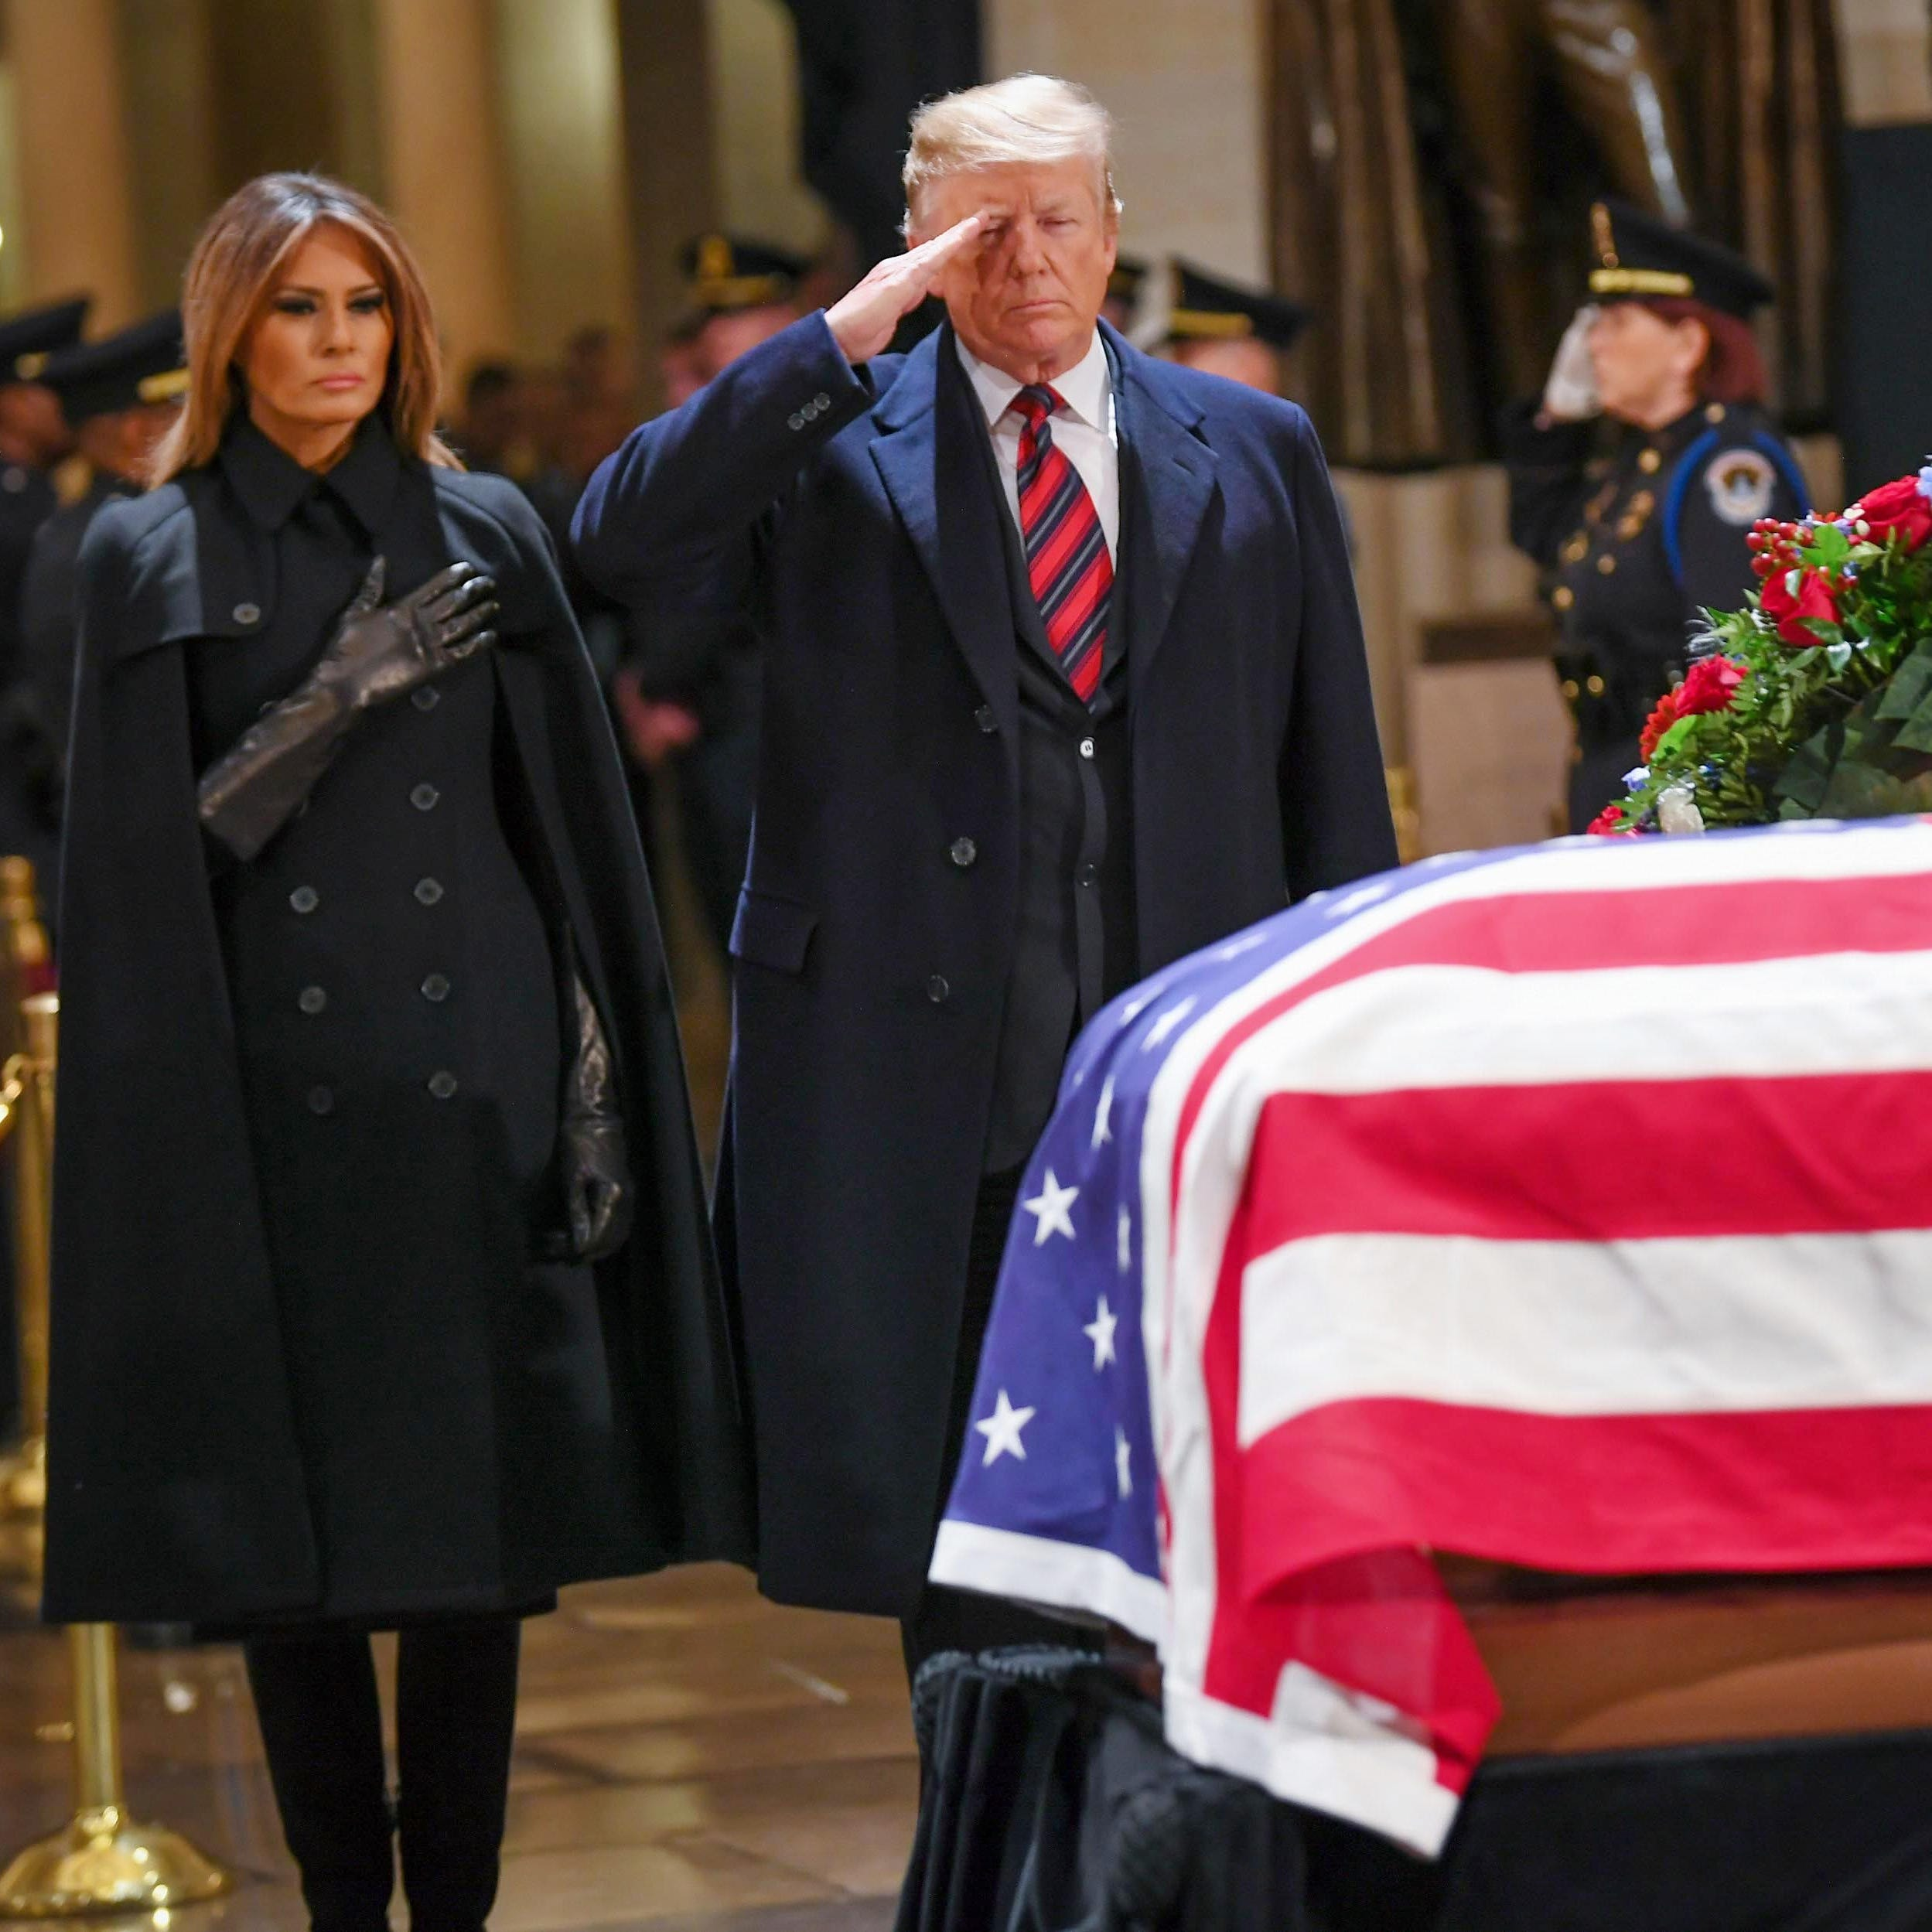 Live stream: Former President George H.W. Bush's state funeral